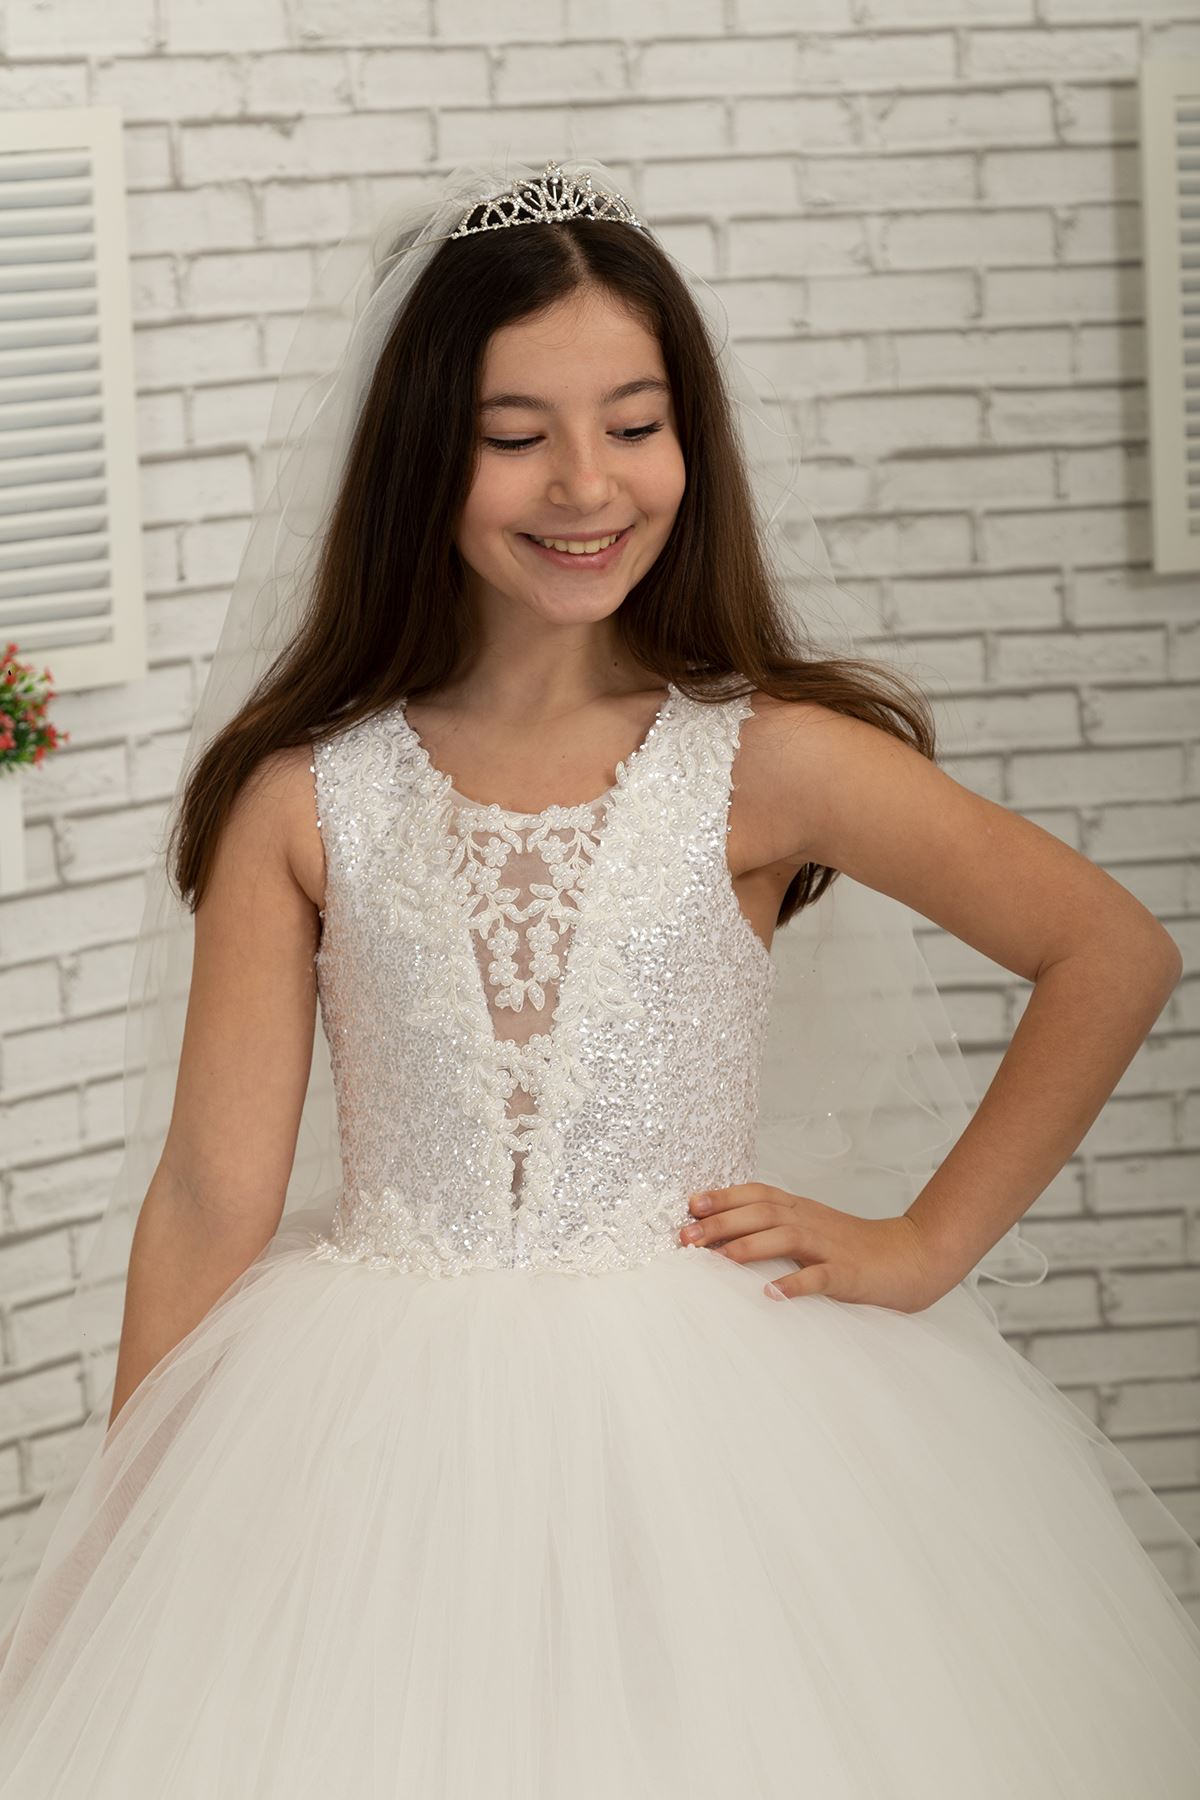 Special sequin body detail, hemline detail Fluffy Girl Child Evening Dress 618 Cream